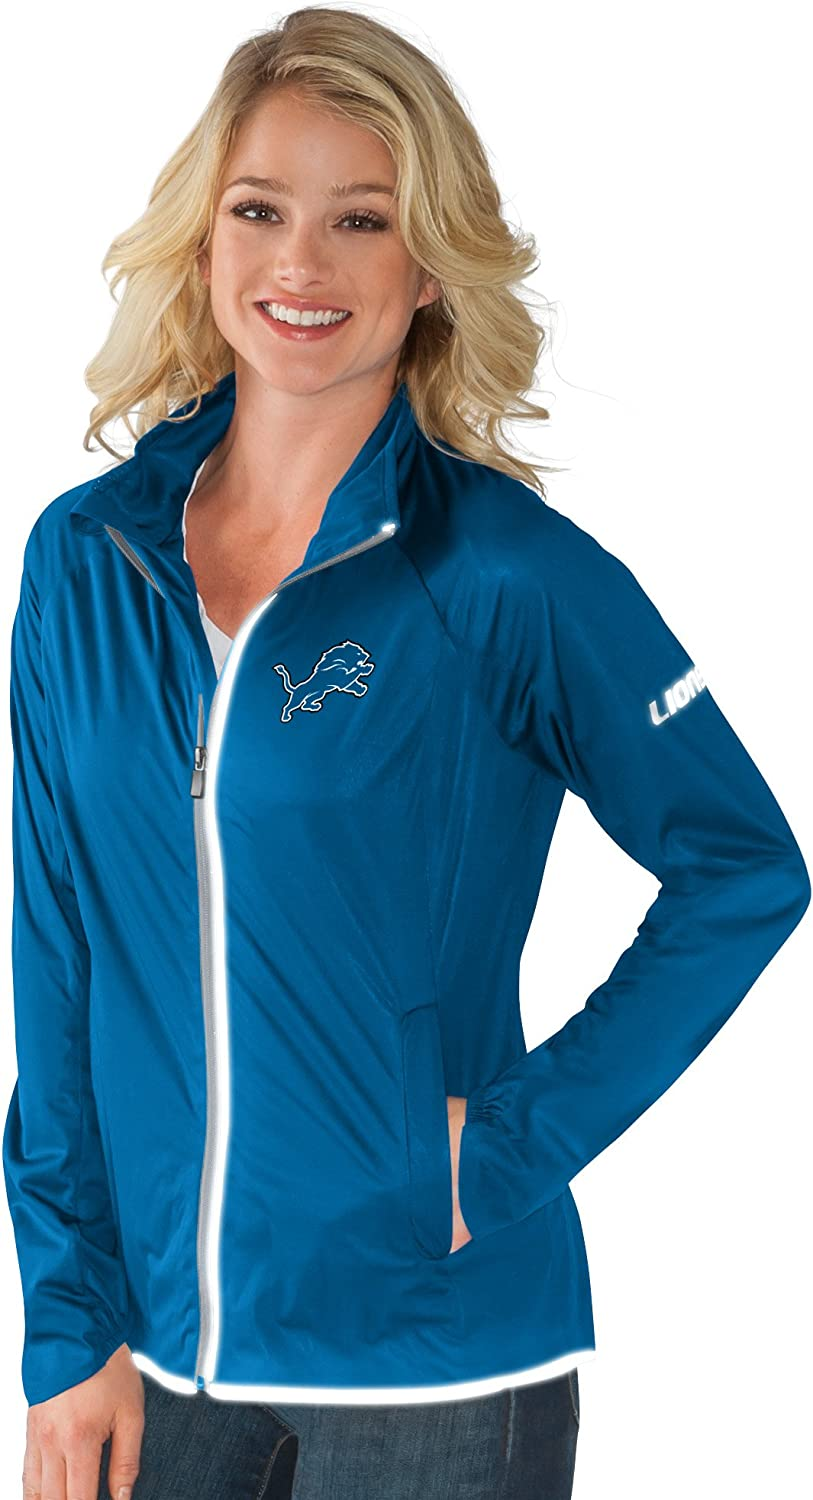 GIII For Her Adult Women G34Her Batter Light Weight Jacket